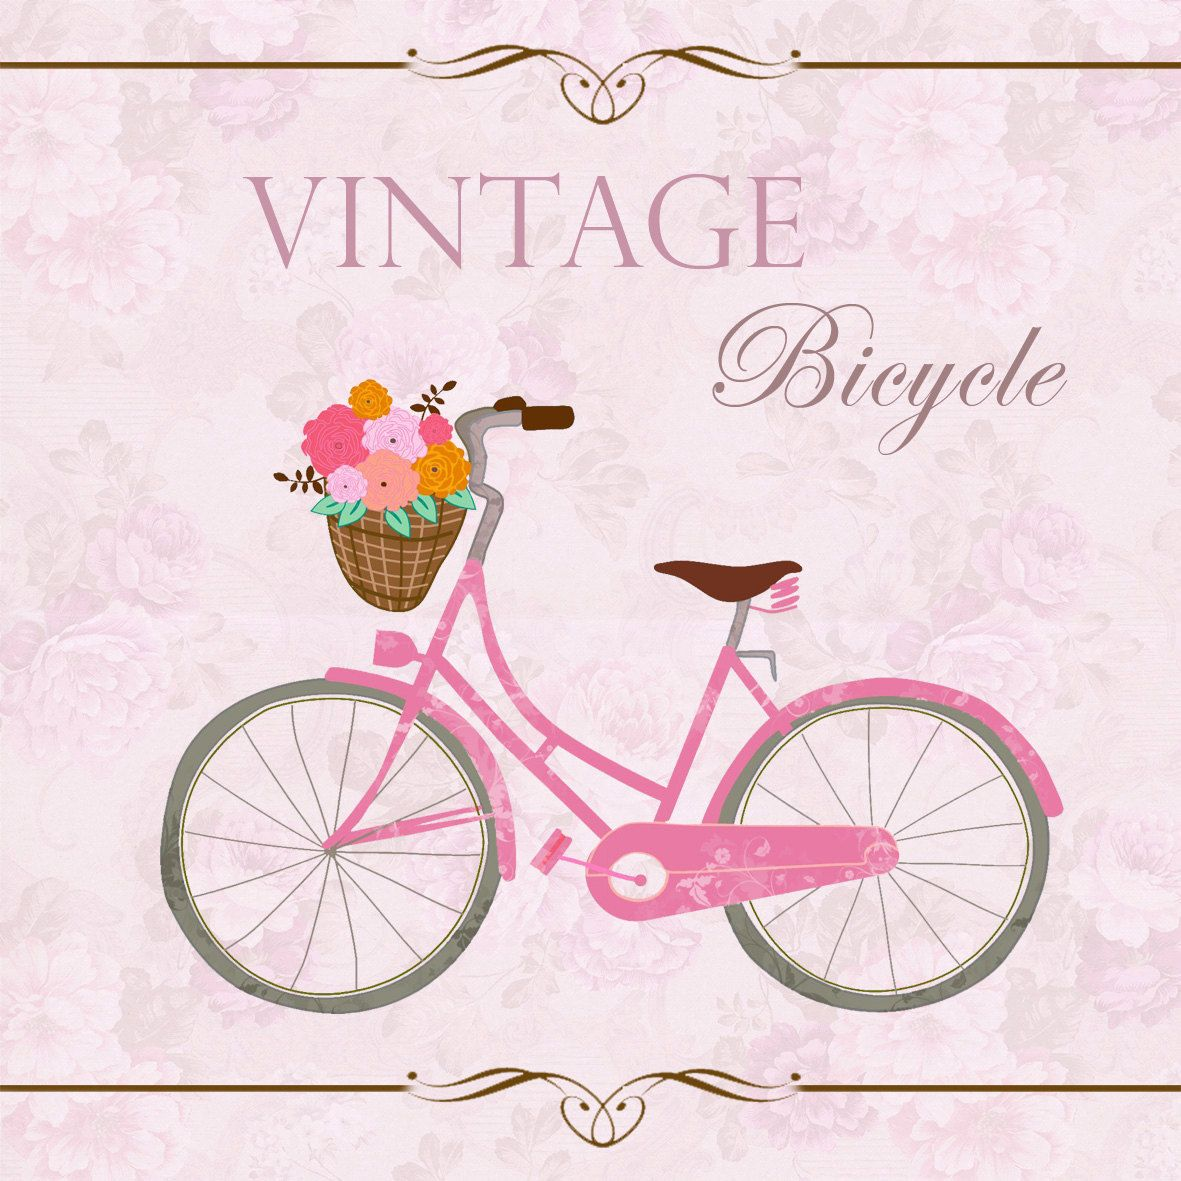 Vintage bicycle clip art. Bike clipart shabby chic